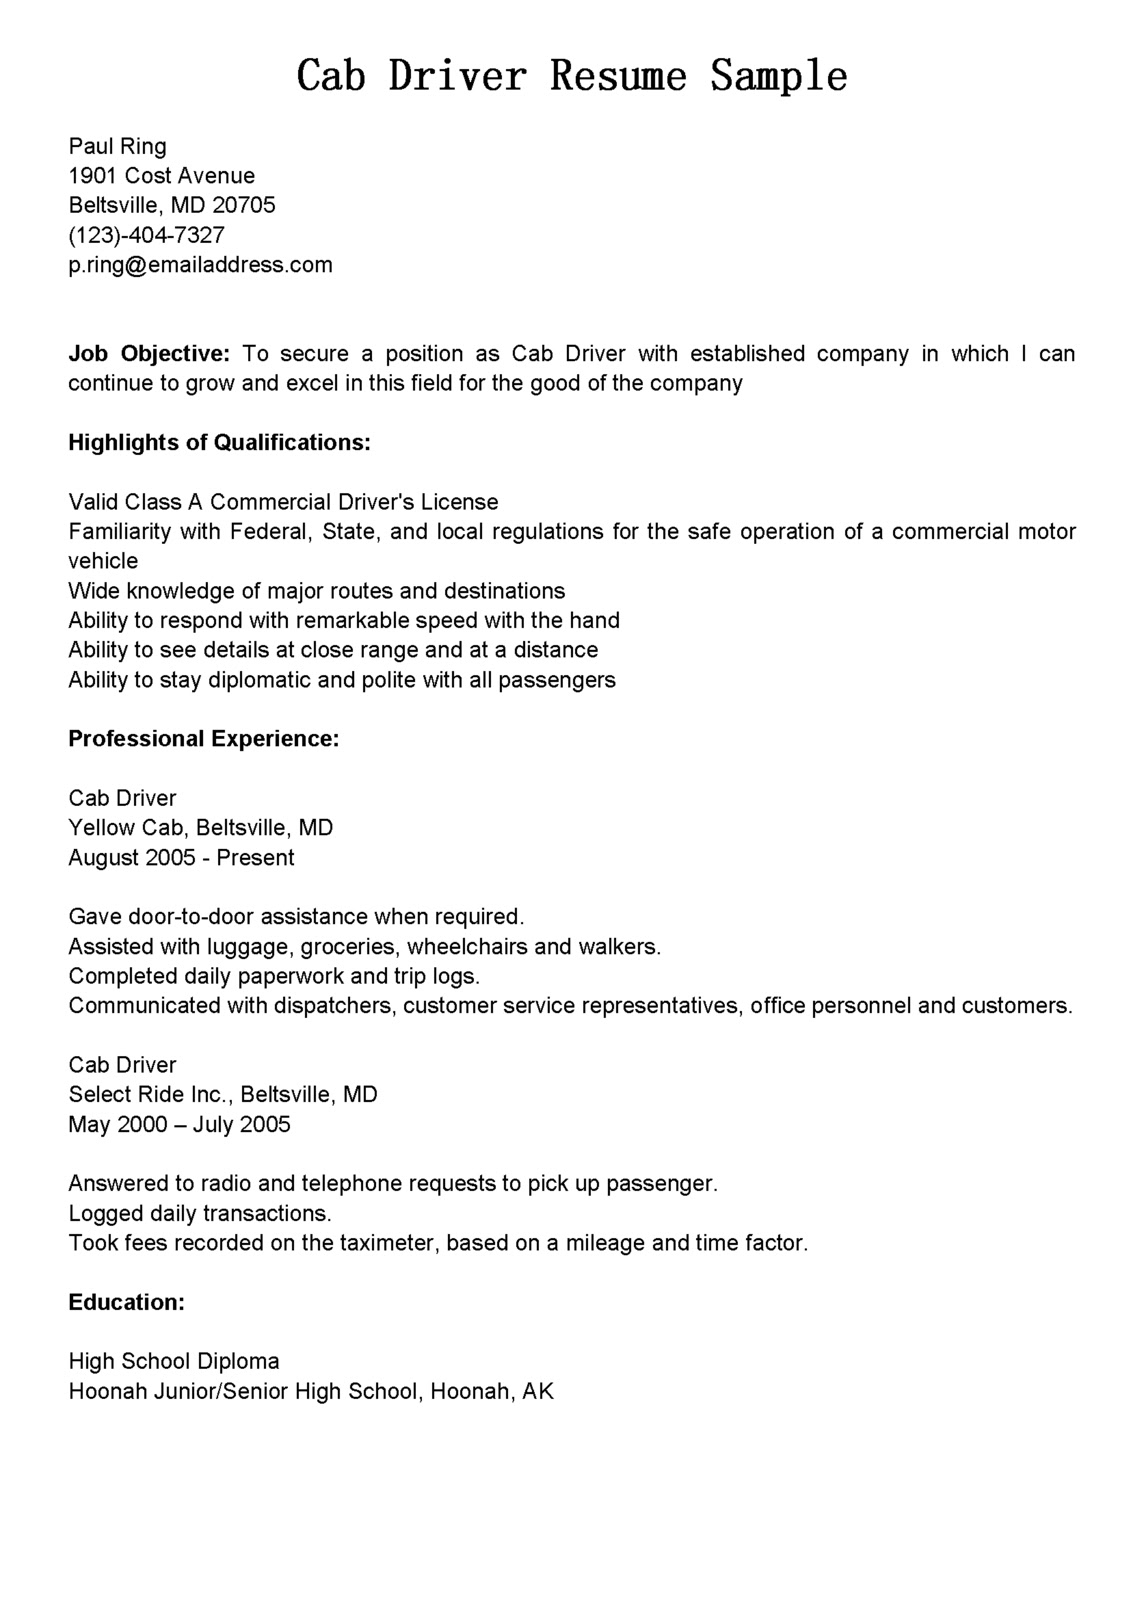 Resume For A Driver Driver Resumes Cab Driver Resume Sample